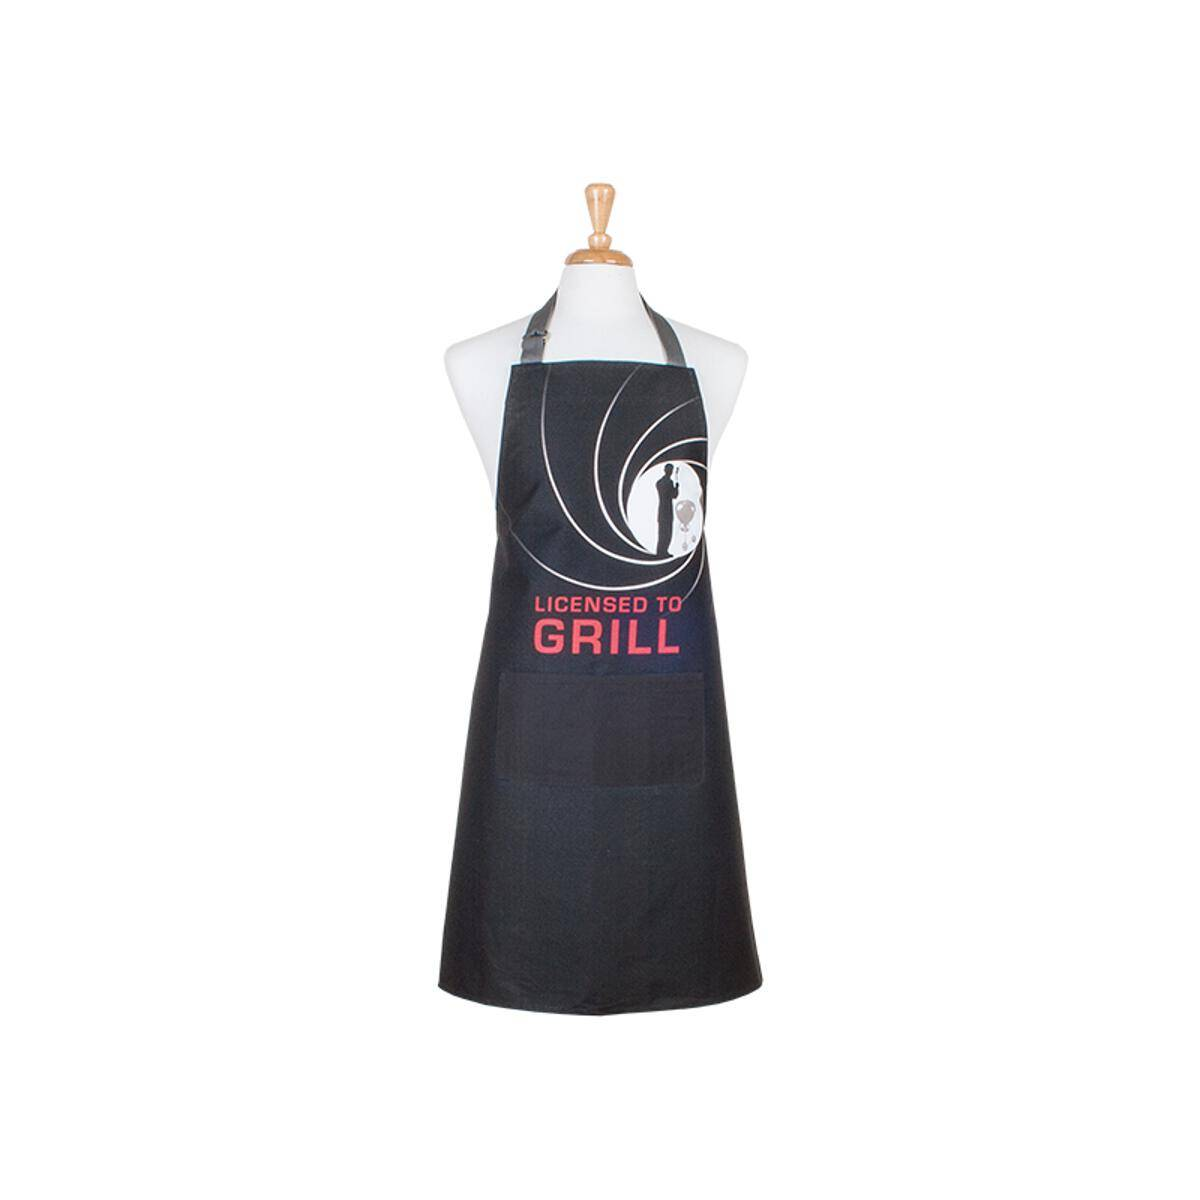 Grillausesiliina Licensed to Grill